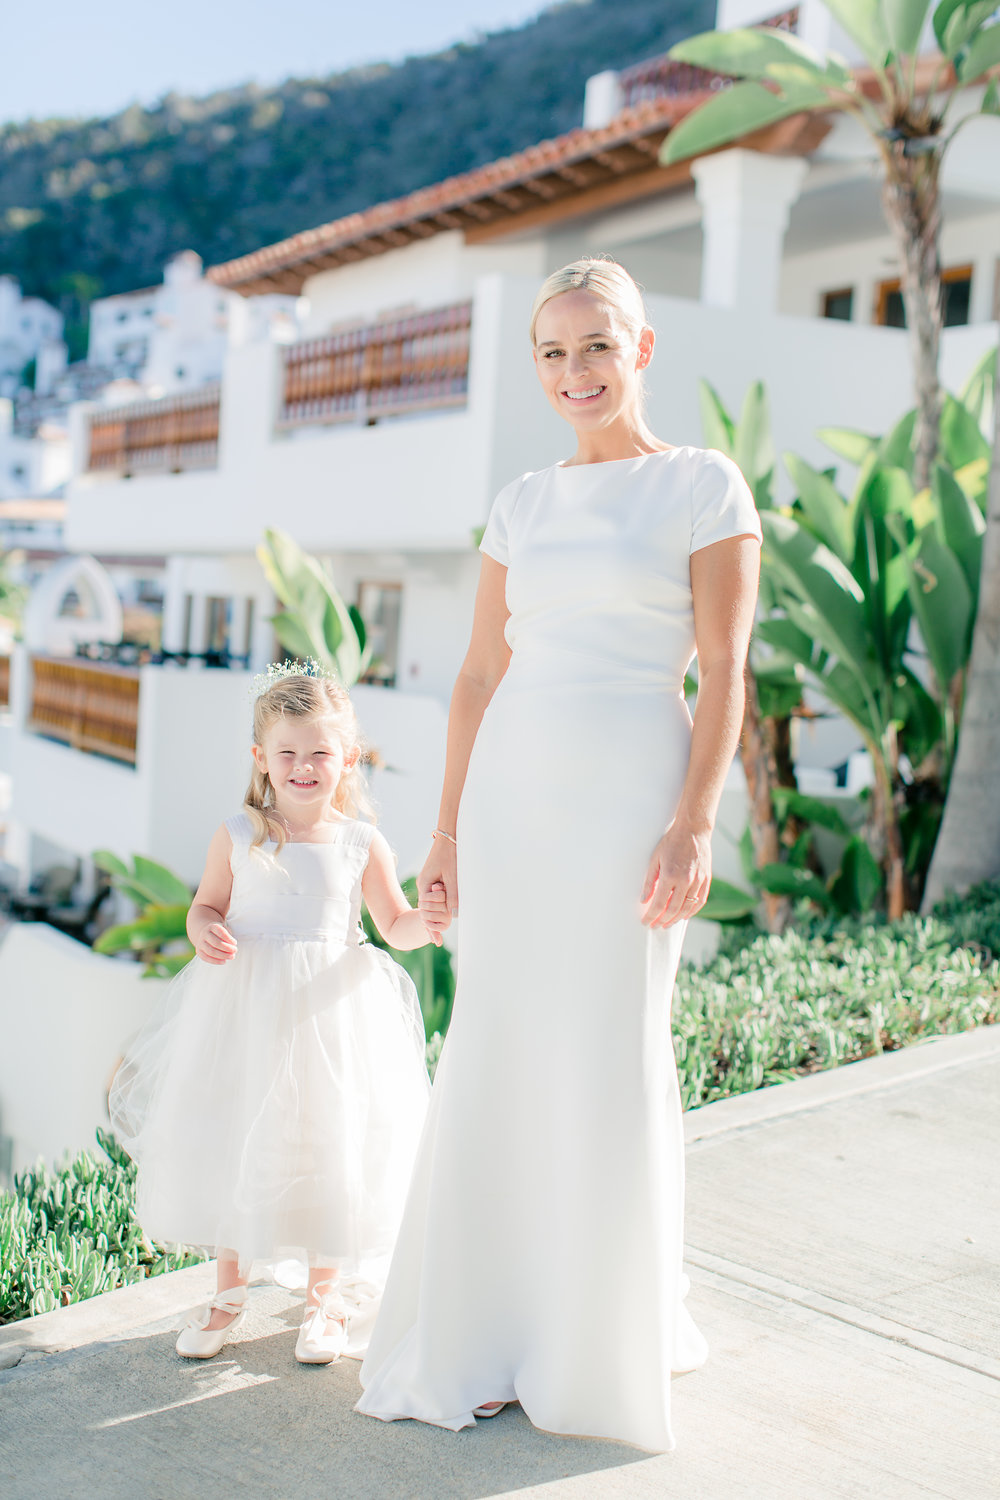 Bride and flower girl in white